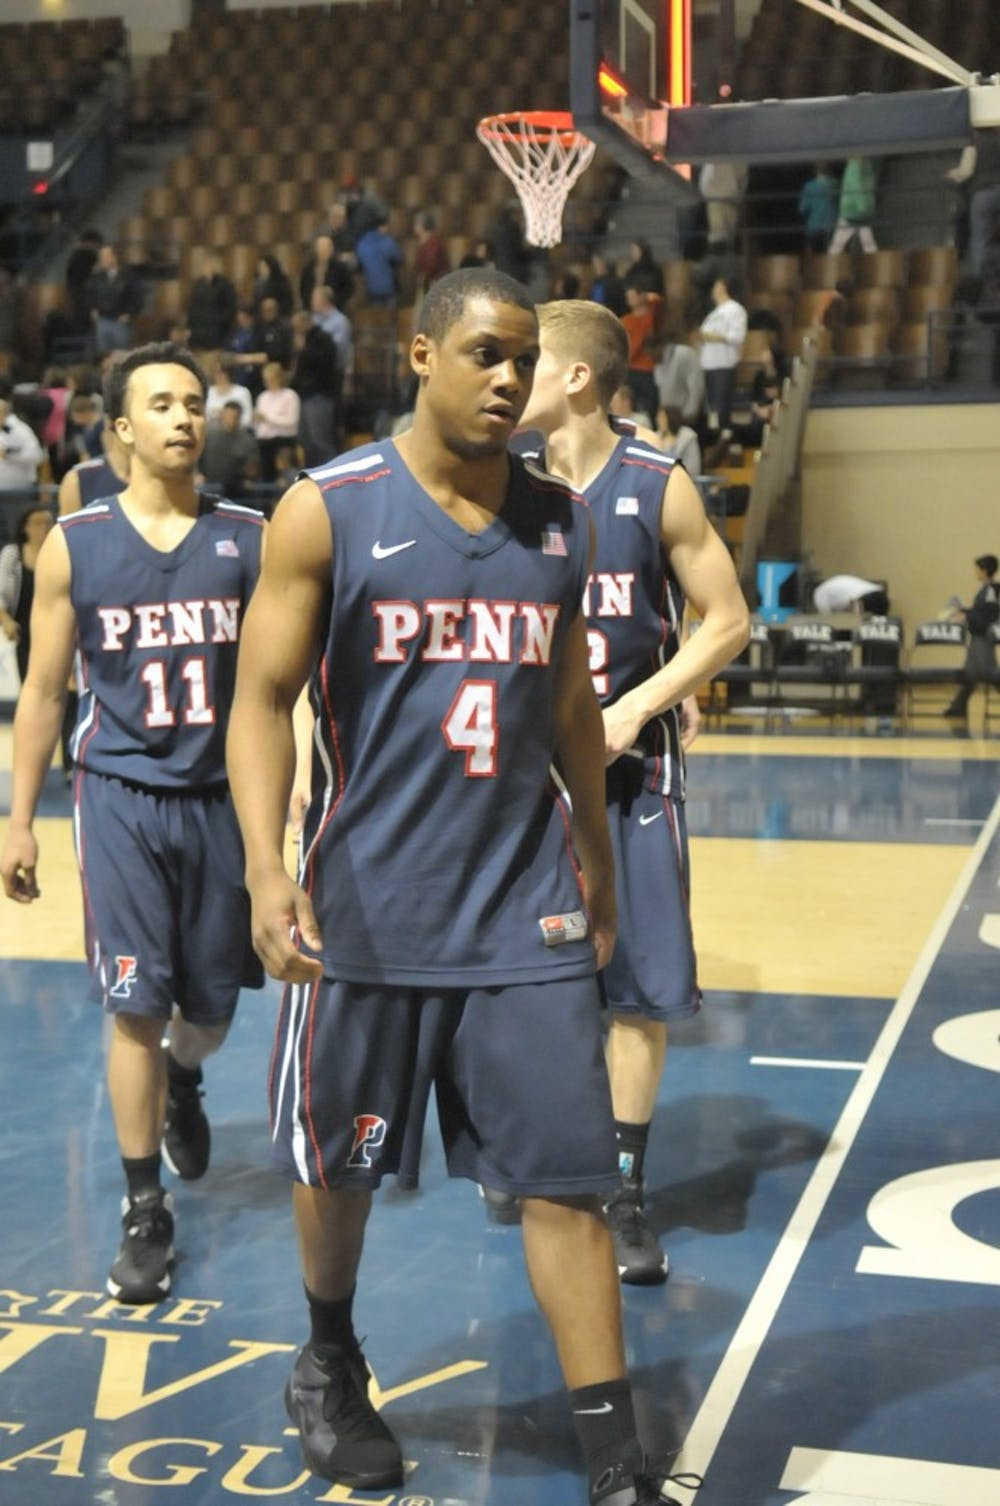 Penn guard Jamal Lewis, like the rest of his teammates, was stunned after Penn's blowout loss to Yale on Friday night.